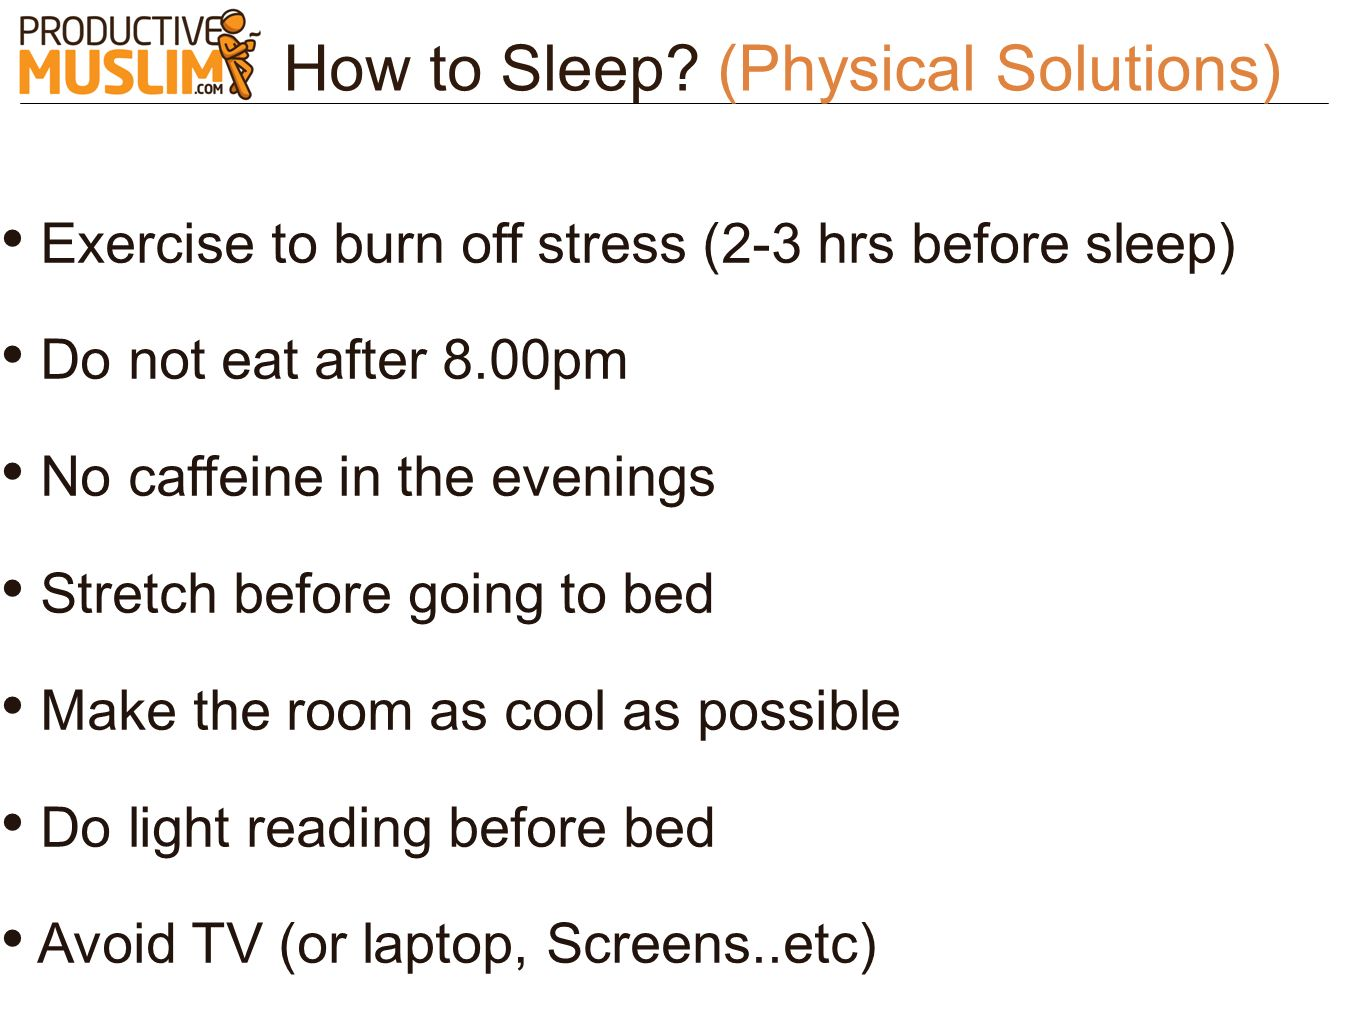 How to Sleep (Physical Solutions)